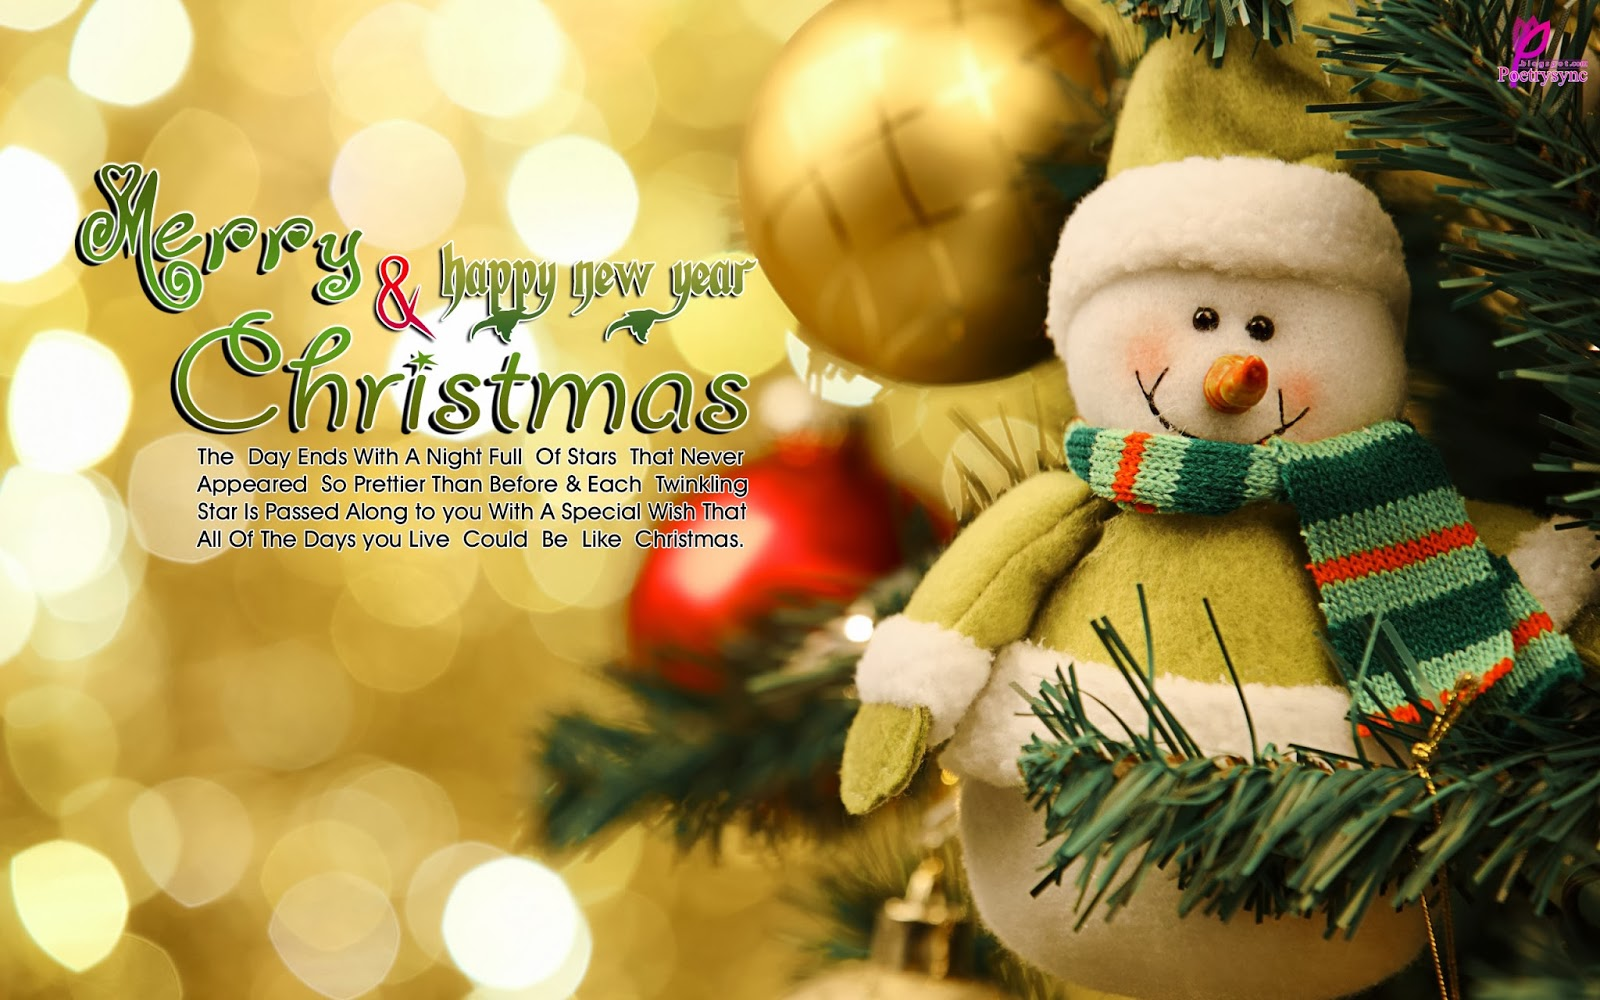 2015 Merry Christmas Wishes Quotes, Xmas Pictures Greetings | Merry ...